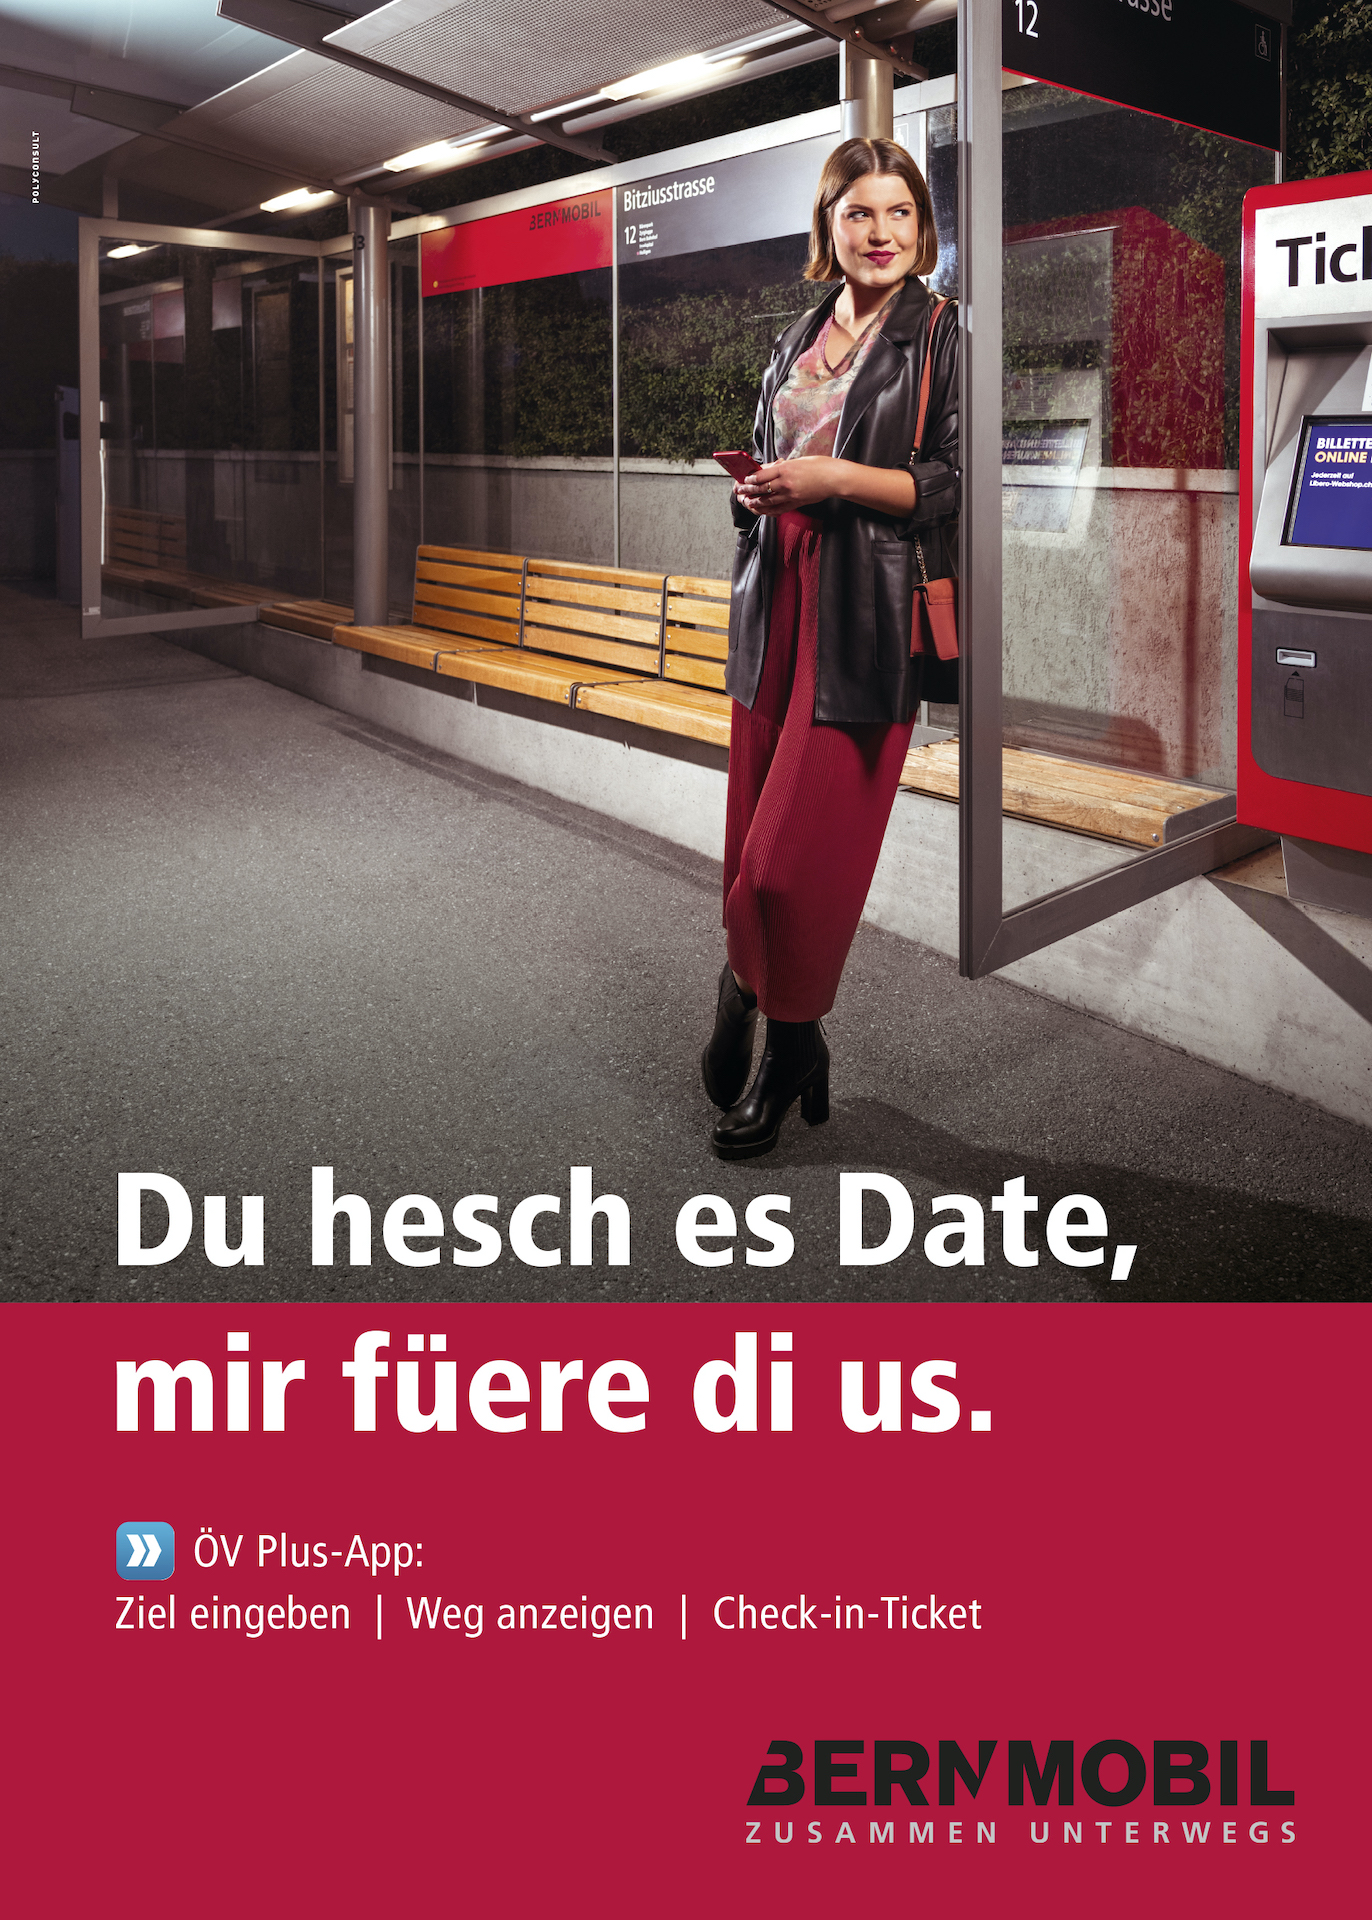 Polyconsult-Bernmobil-Date